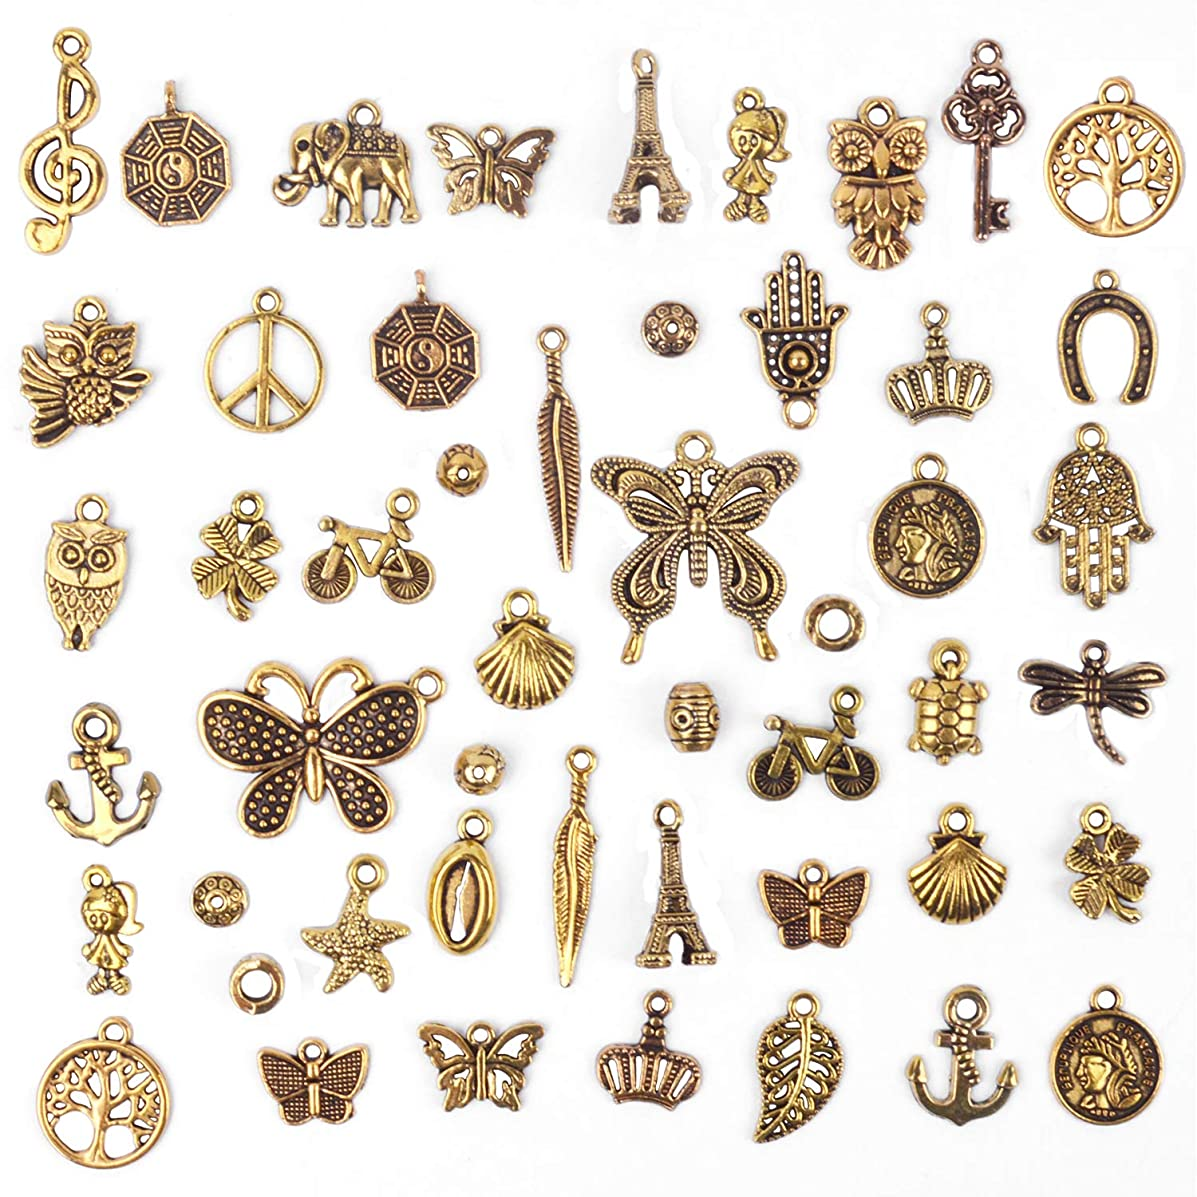 BronaGrand 50 Pieces Mixed Bracelet Charms Antique Necklace Pendants Bulk Pack for Craft and Jewelry Making, Antique Gold